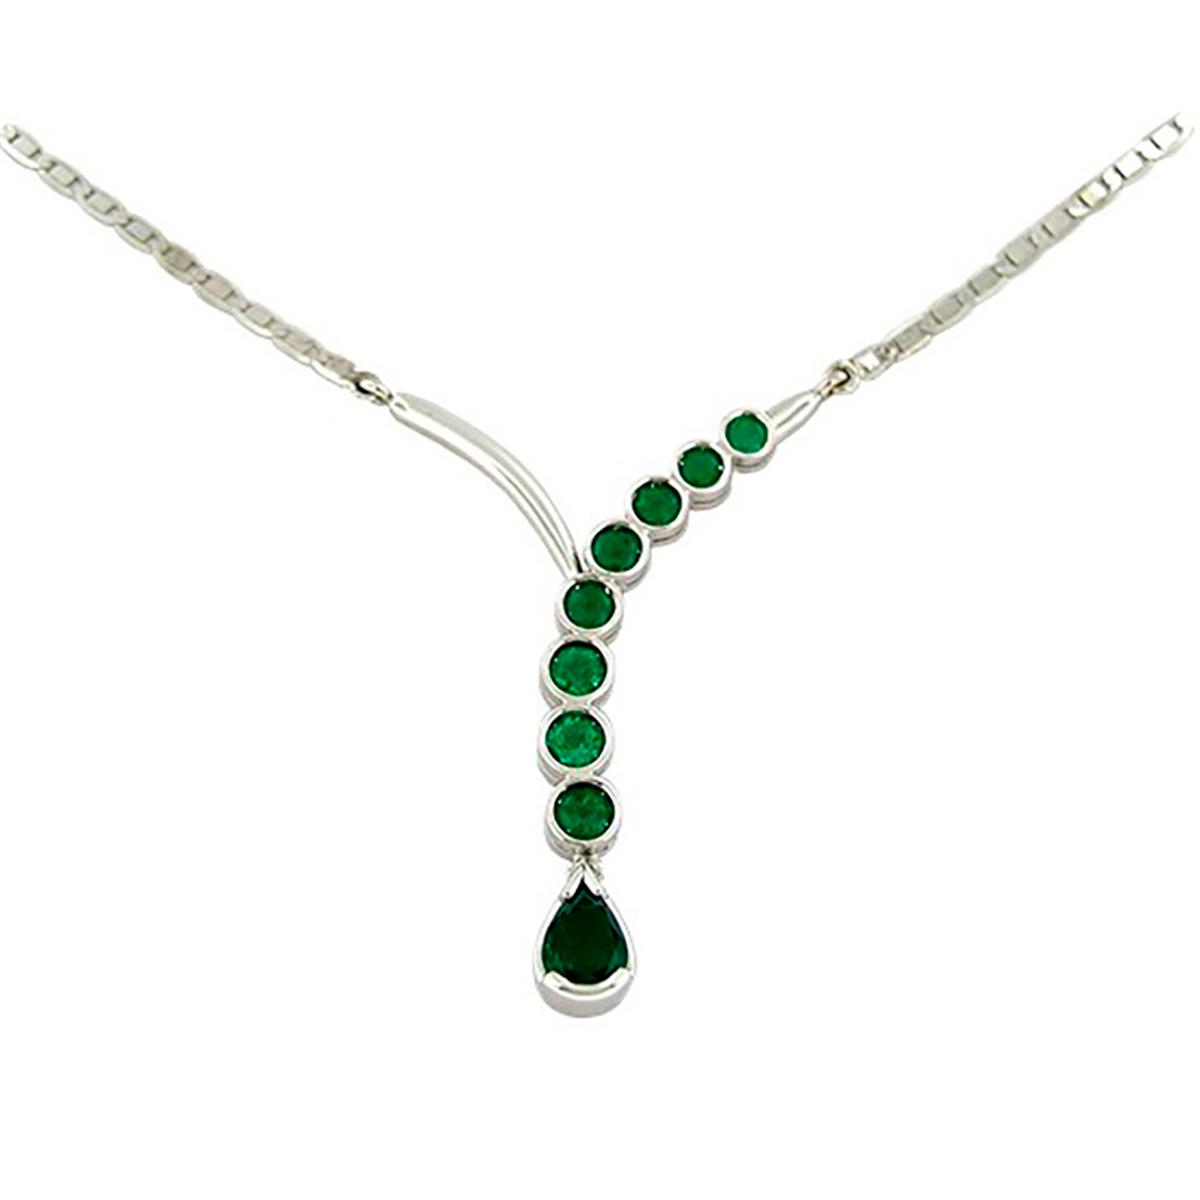 emerald-necklace-in-18k-white-gold-bezel-set-with-round-emeralds